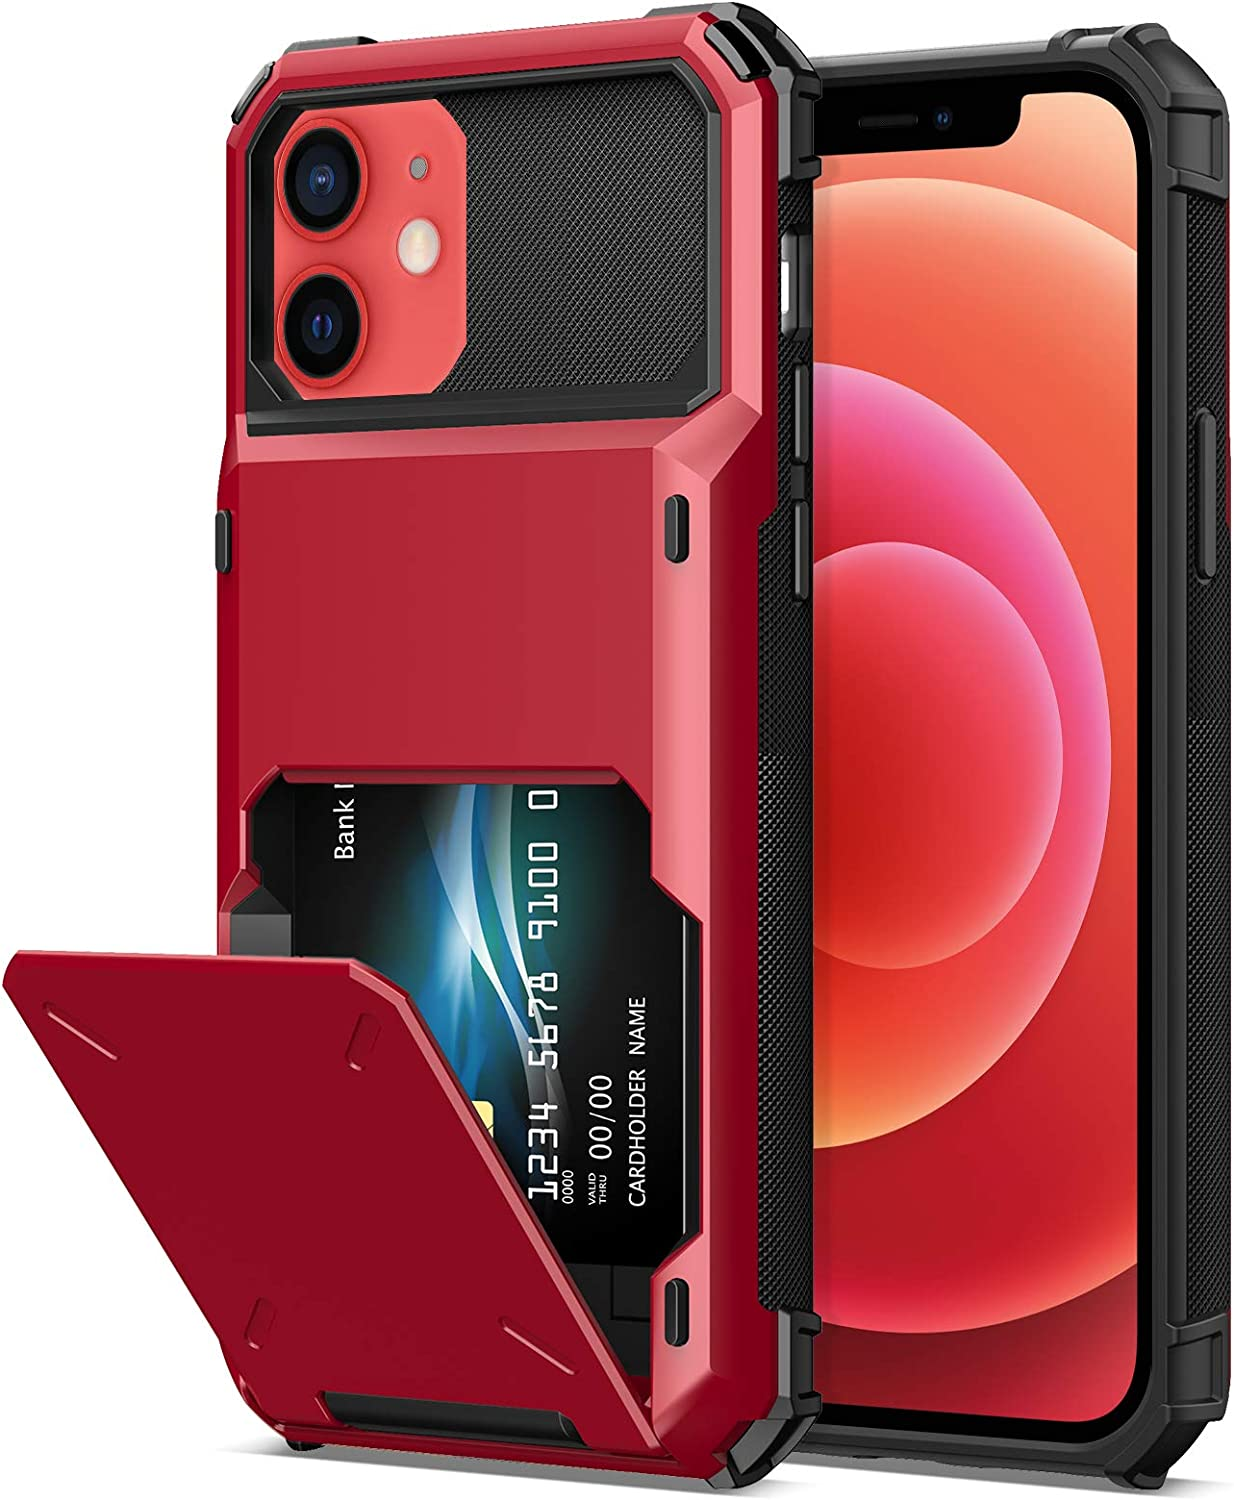 TITACUTE Compatible with iPhone 12 Pro Case with Card Holder Wallet Case Cover Dual Layer Slim Case Hybrid Shockproof Armor Case Back Flip Case Replacement for iPhone 12/12 Pro 5G 6.1 inch Red